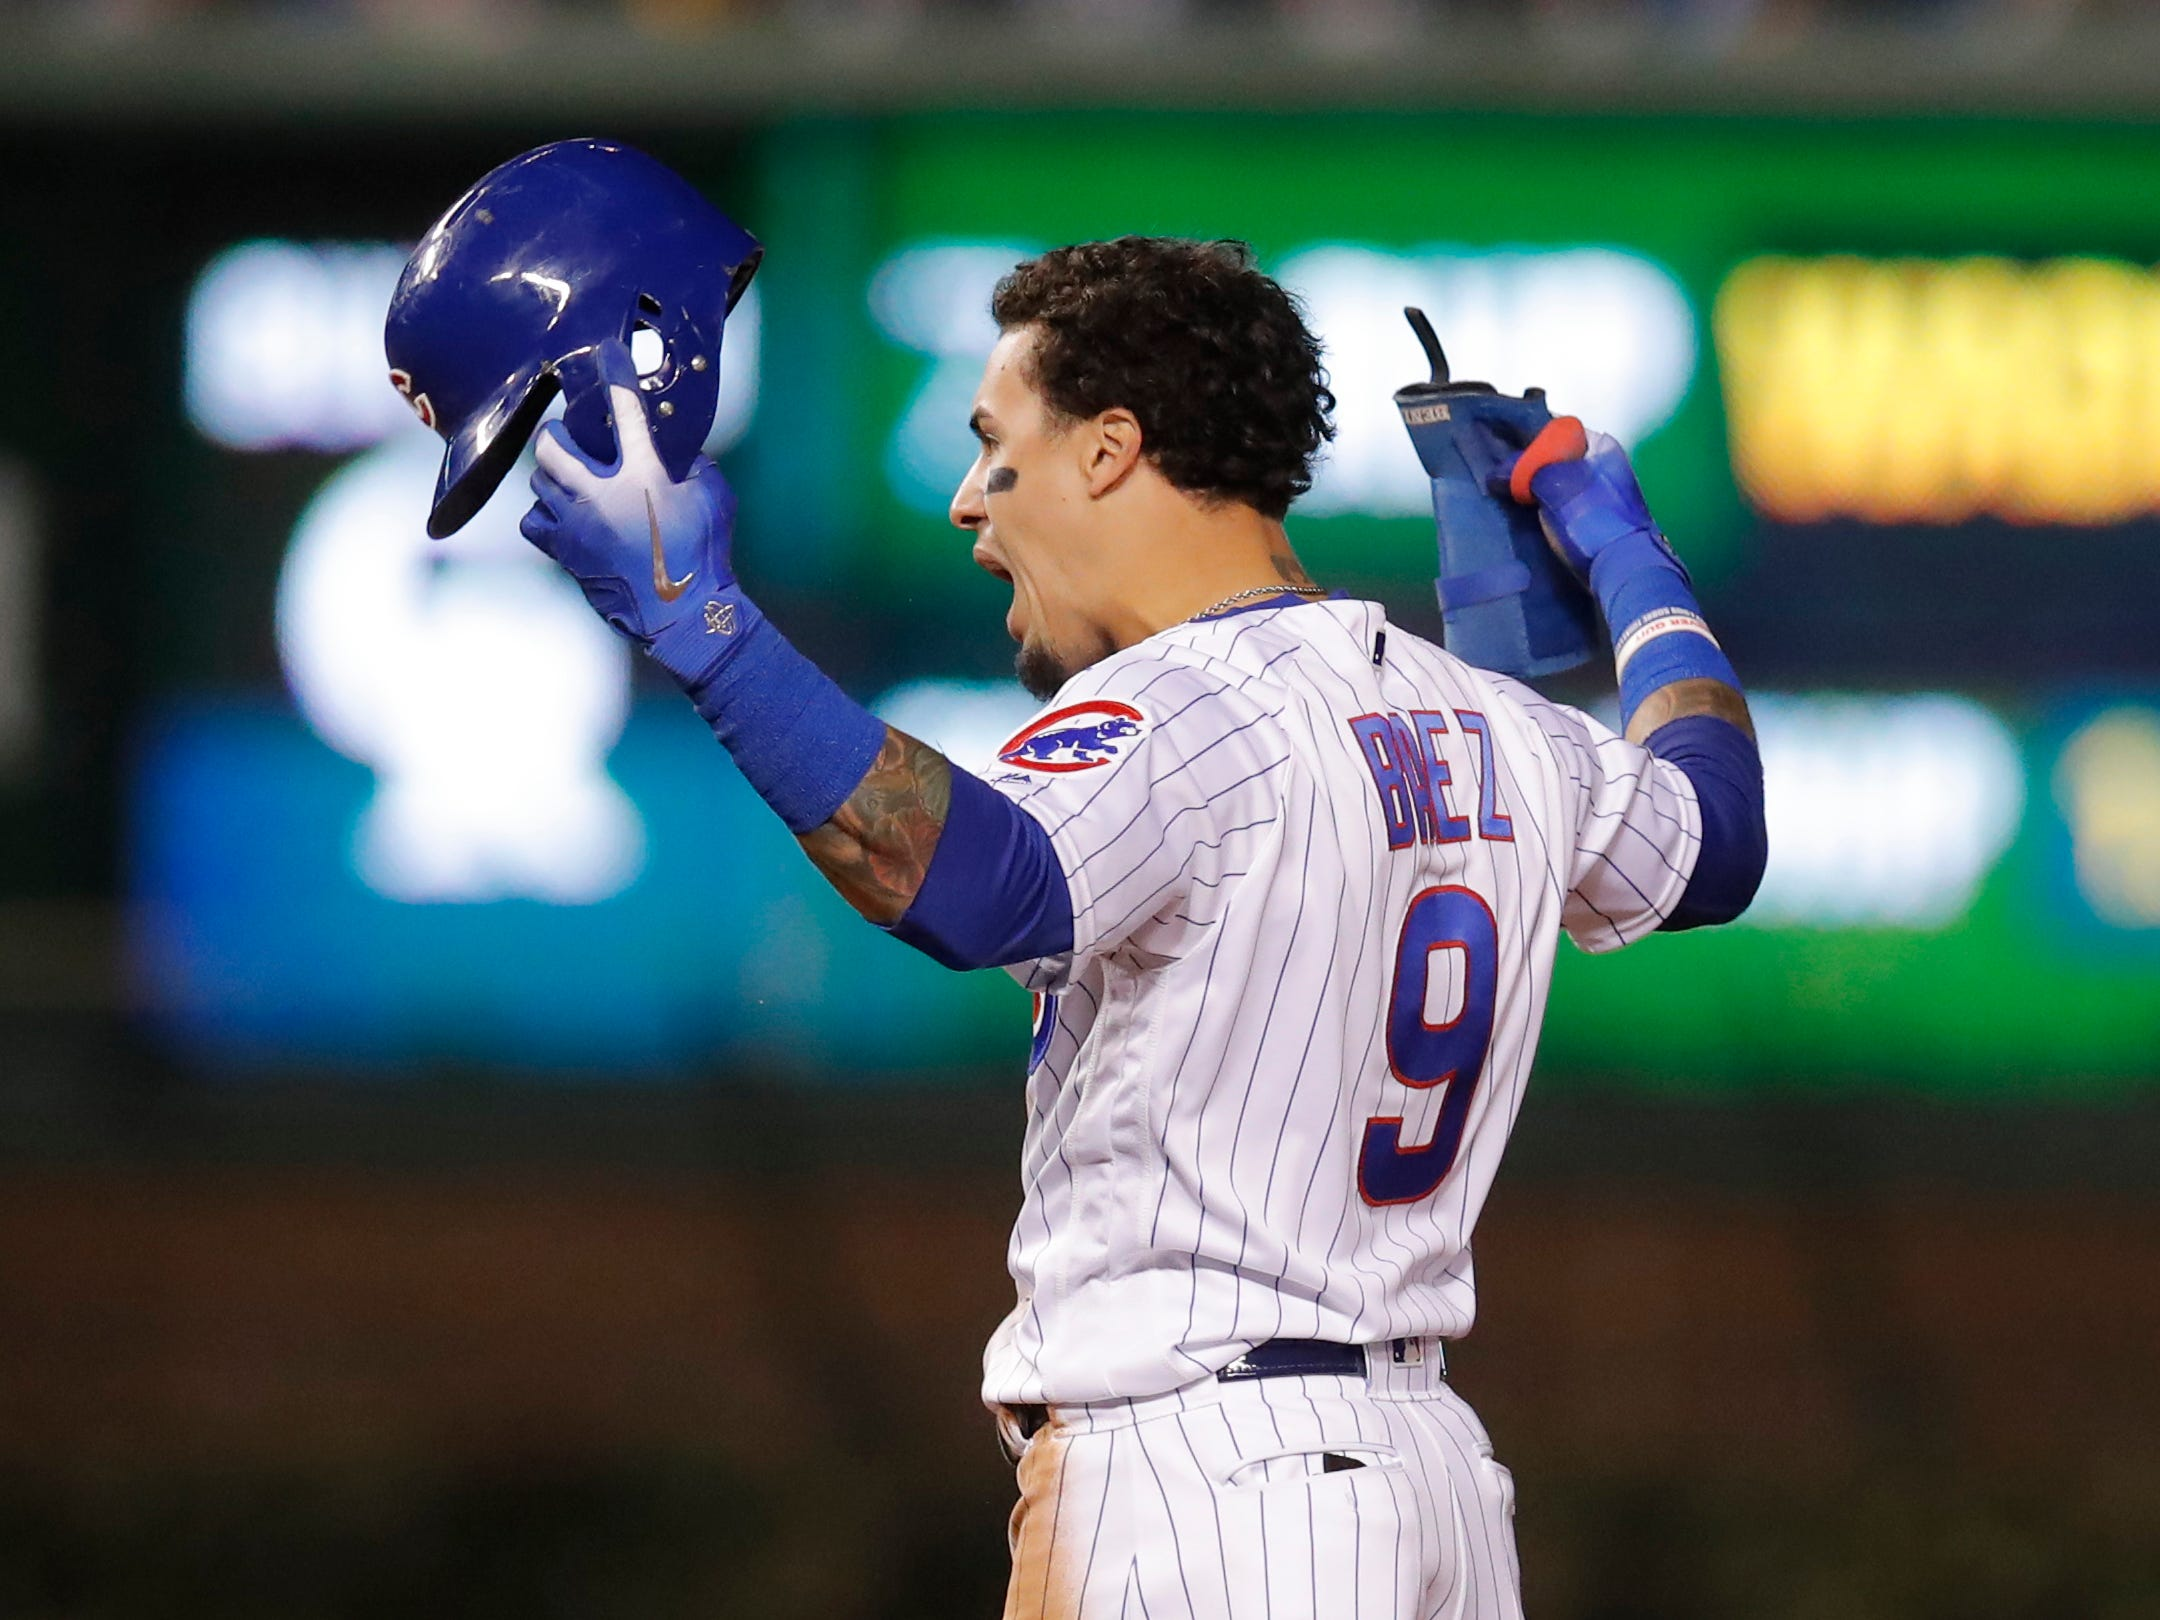 Oct 2, 2018; Chicago, IL, USA; Chicago Cubs shortstop Javier Baez (9) celebrates after hitting a RBI double against the Colorado Rockies in the 8th inning in the 2018 National League wild card playoff baseball game at Wrigley Field.